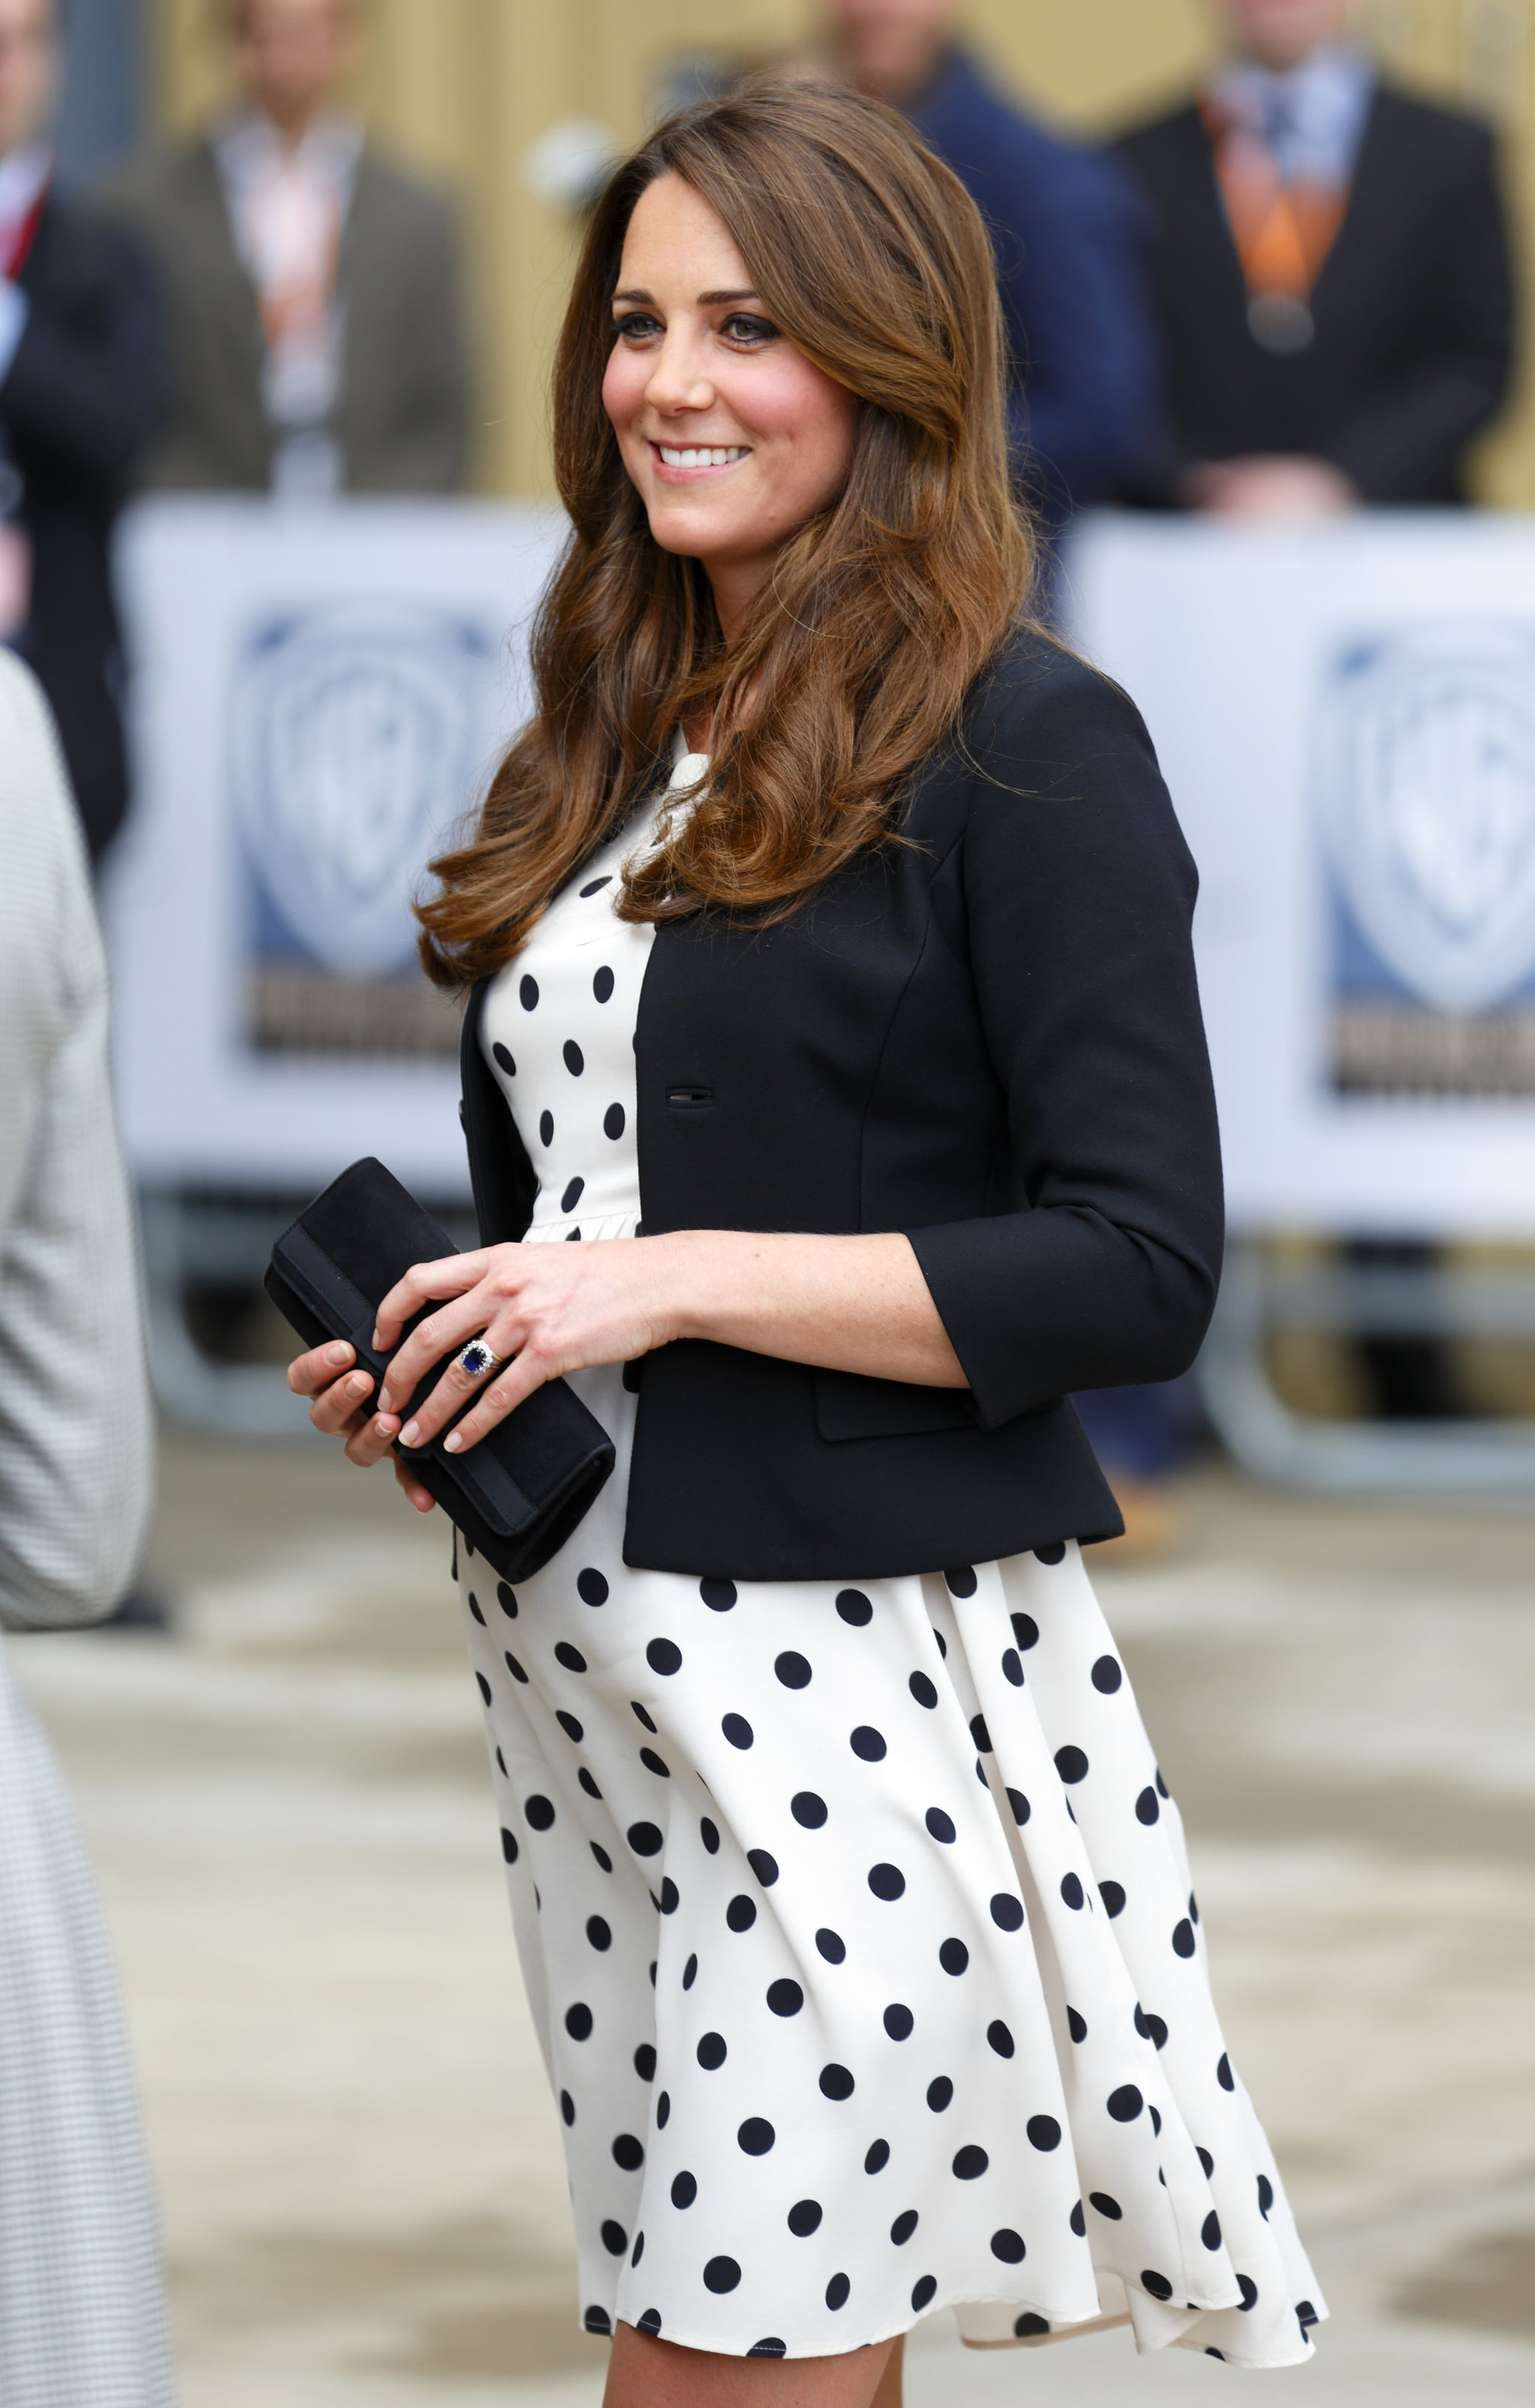 Kate Middleton wore a Topshop dress.